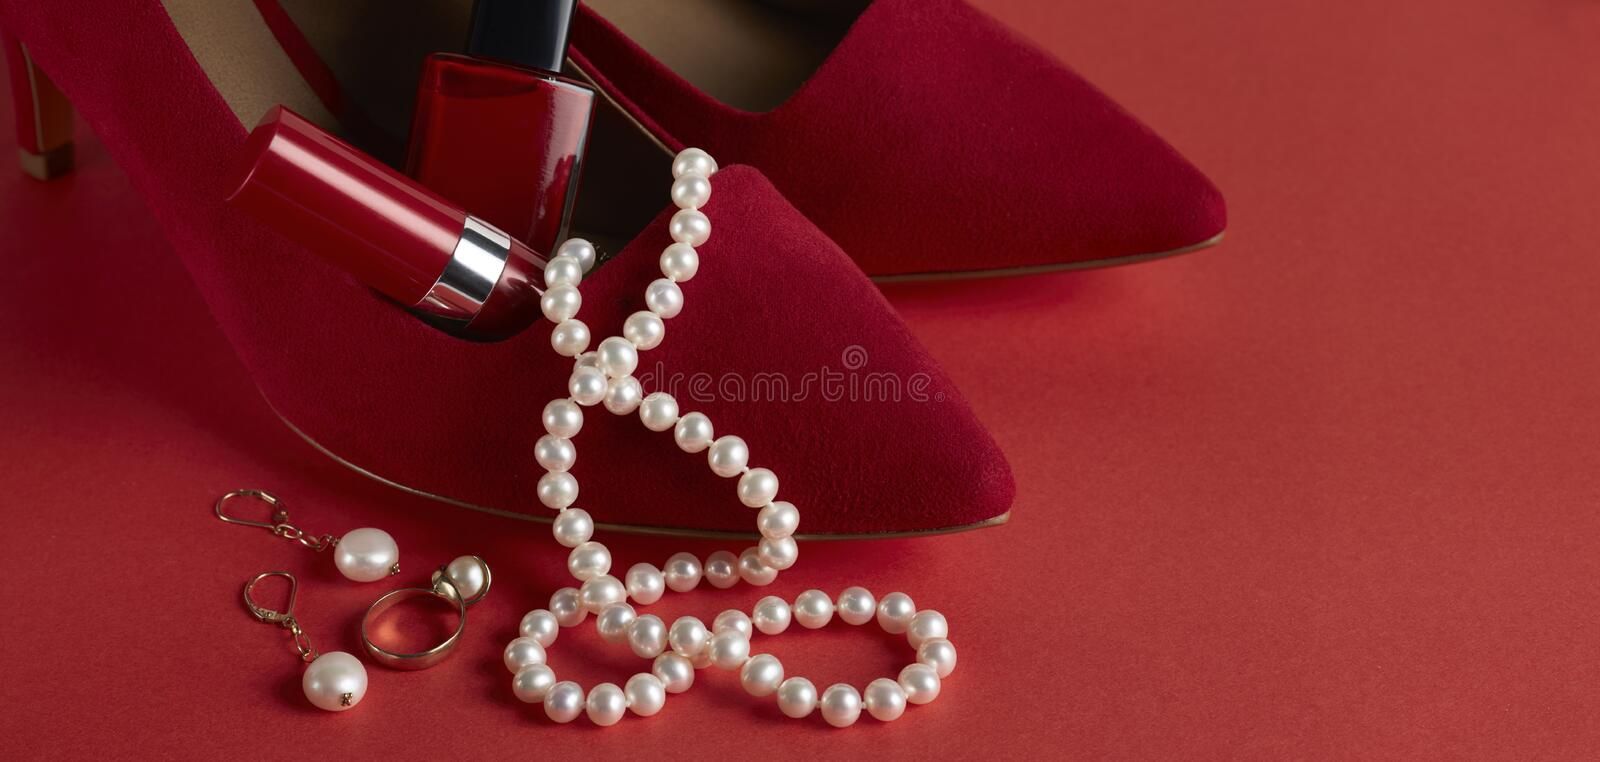 Pearl Necklace Red shoes stock images